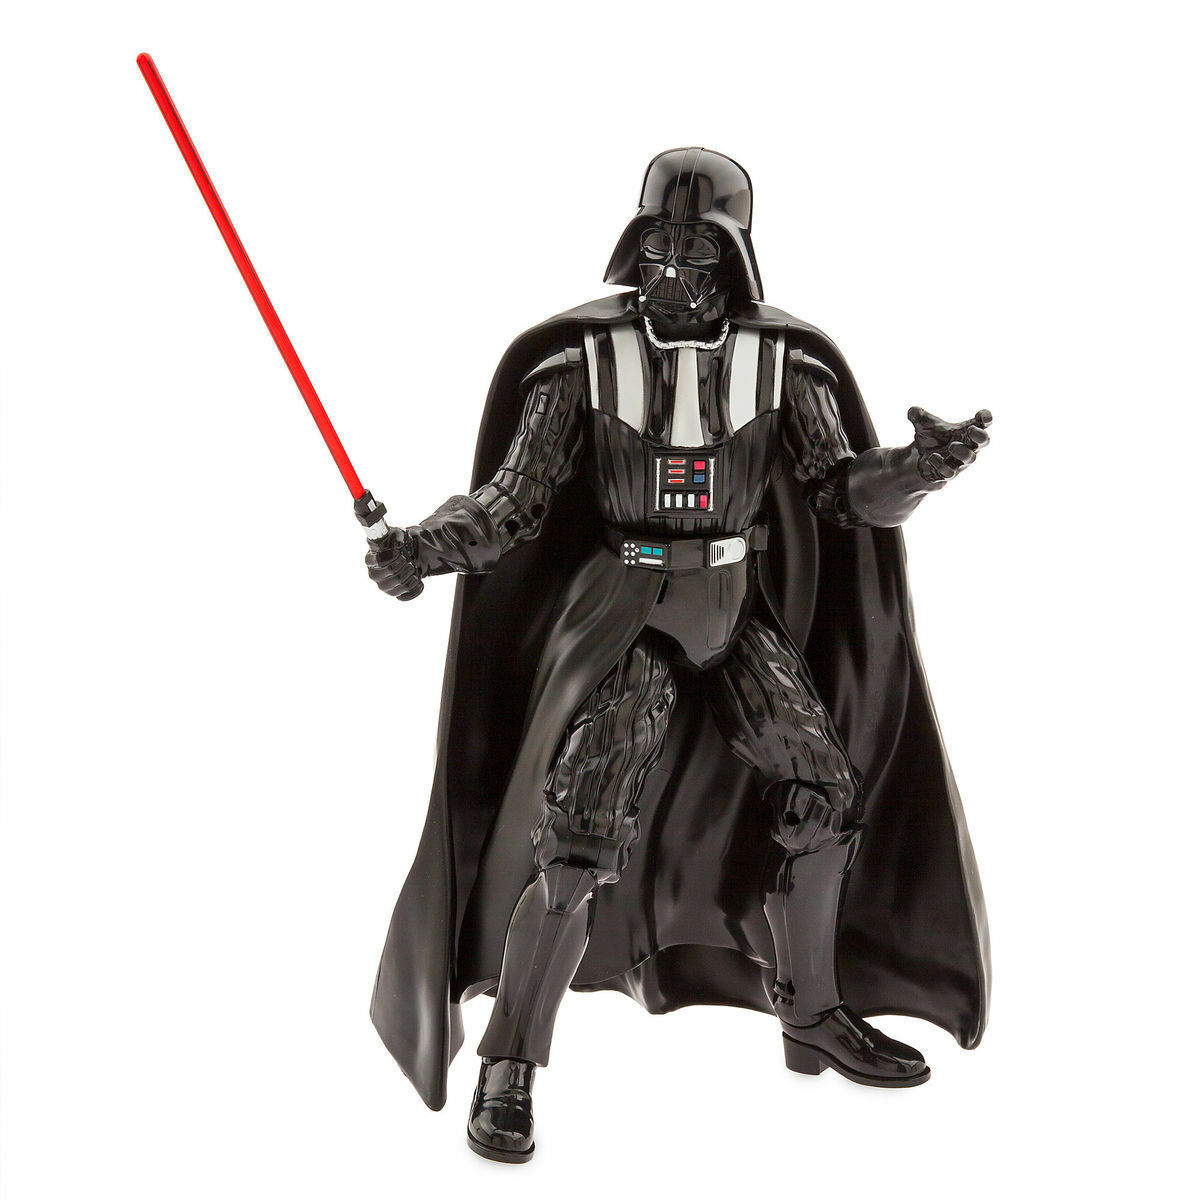 Star Wars - Darth Vader sprechende Action-Figur NEU